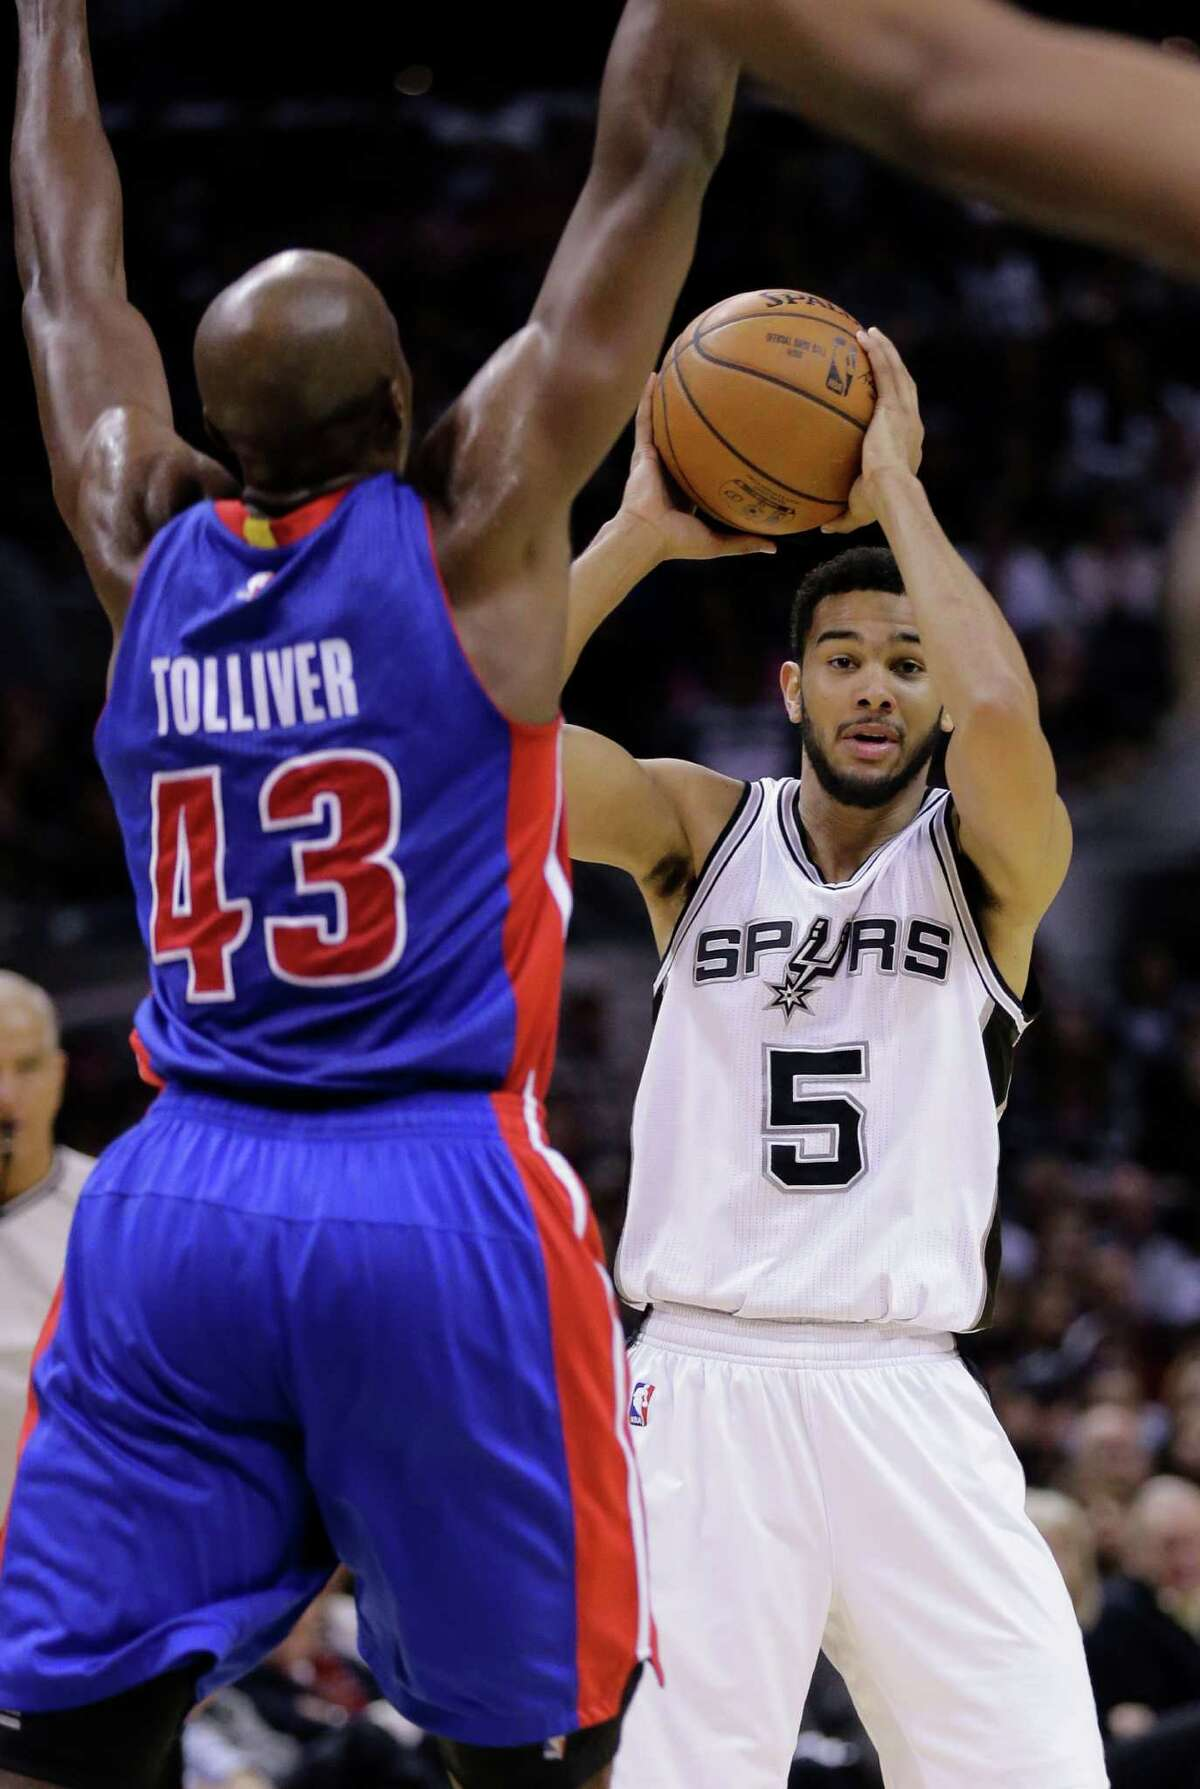 San Antonio Spurs' Cory Joseph (5) is defended by Detroit Pistons' Anthony Tolliver (43) during the second half of an NBA basketball game, Tuesday, Jan. 6, 2015, in San Antonio. Detroit won 105-104. (AP Photo/Eric Gay)